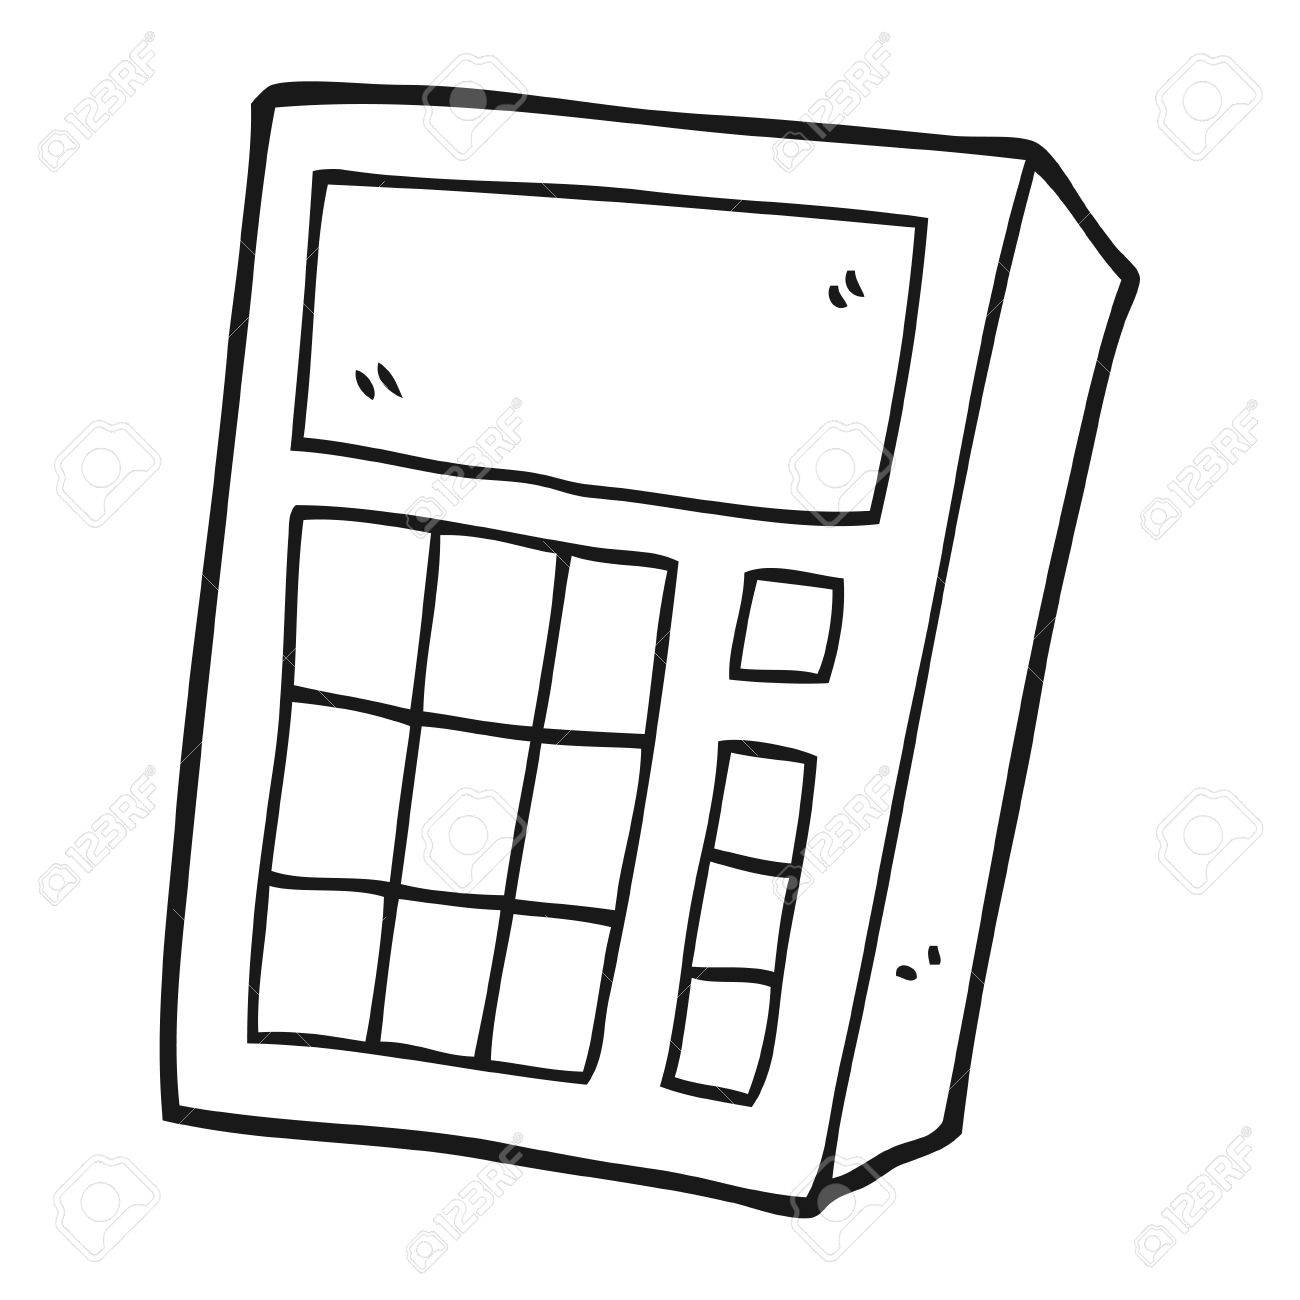 Freehand Drawn Black And White Cartoon Calculator Royalty Free